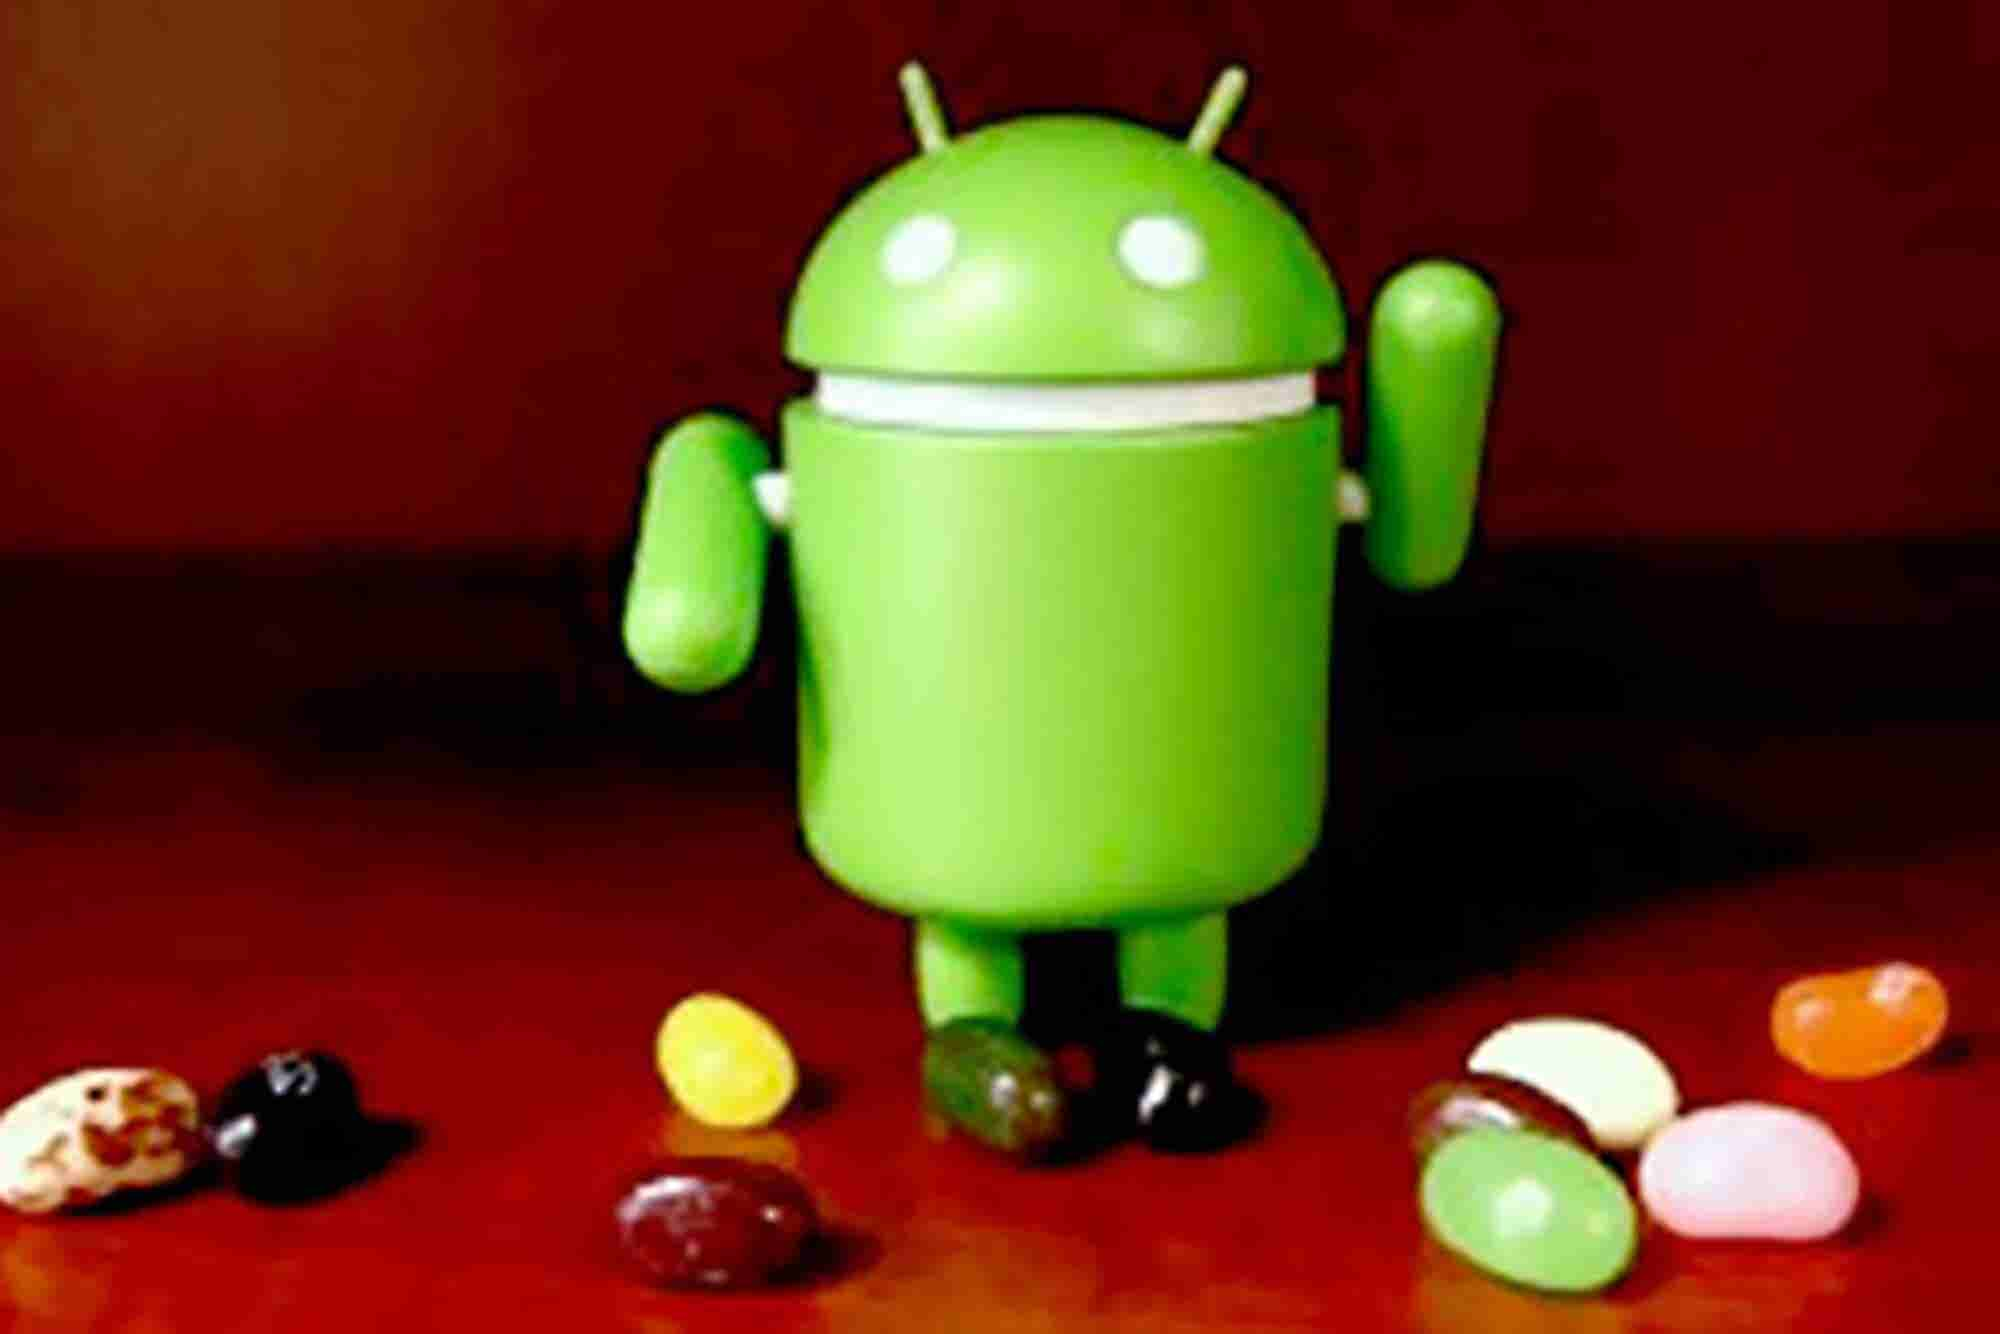 5 Ways Android's 'Jellybean' Can Make You More Efficient